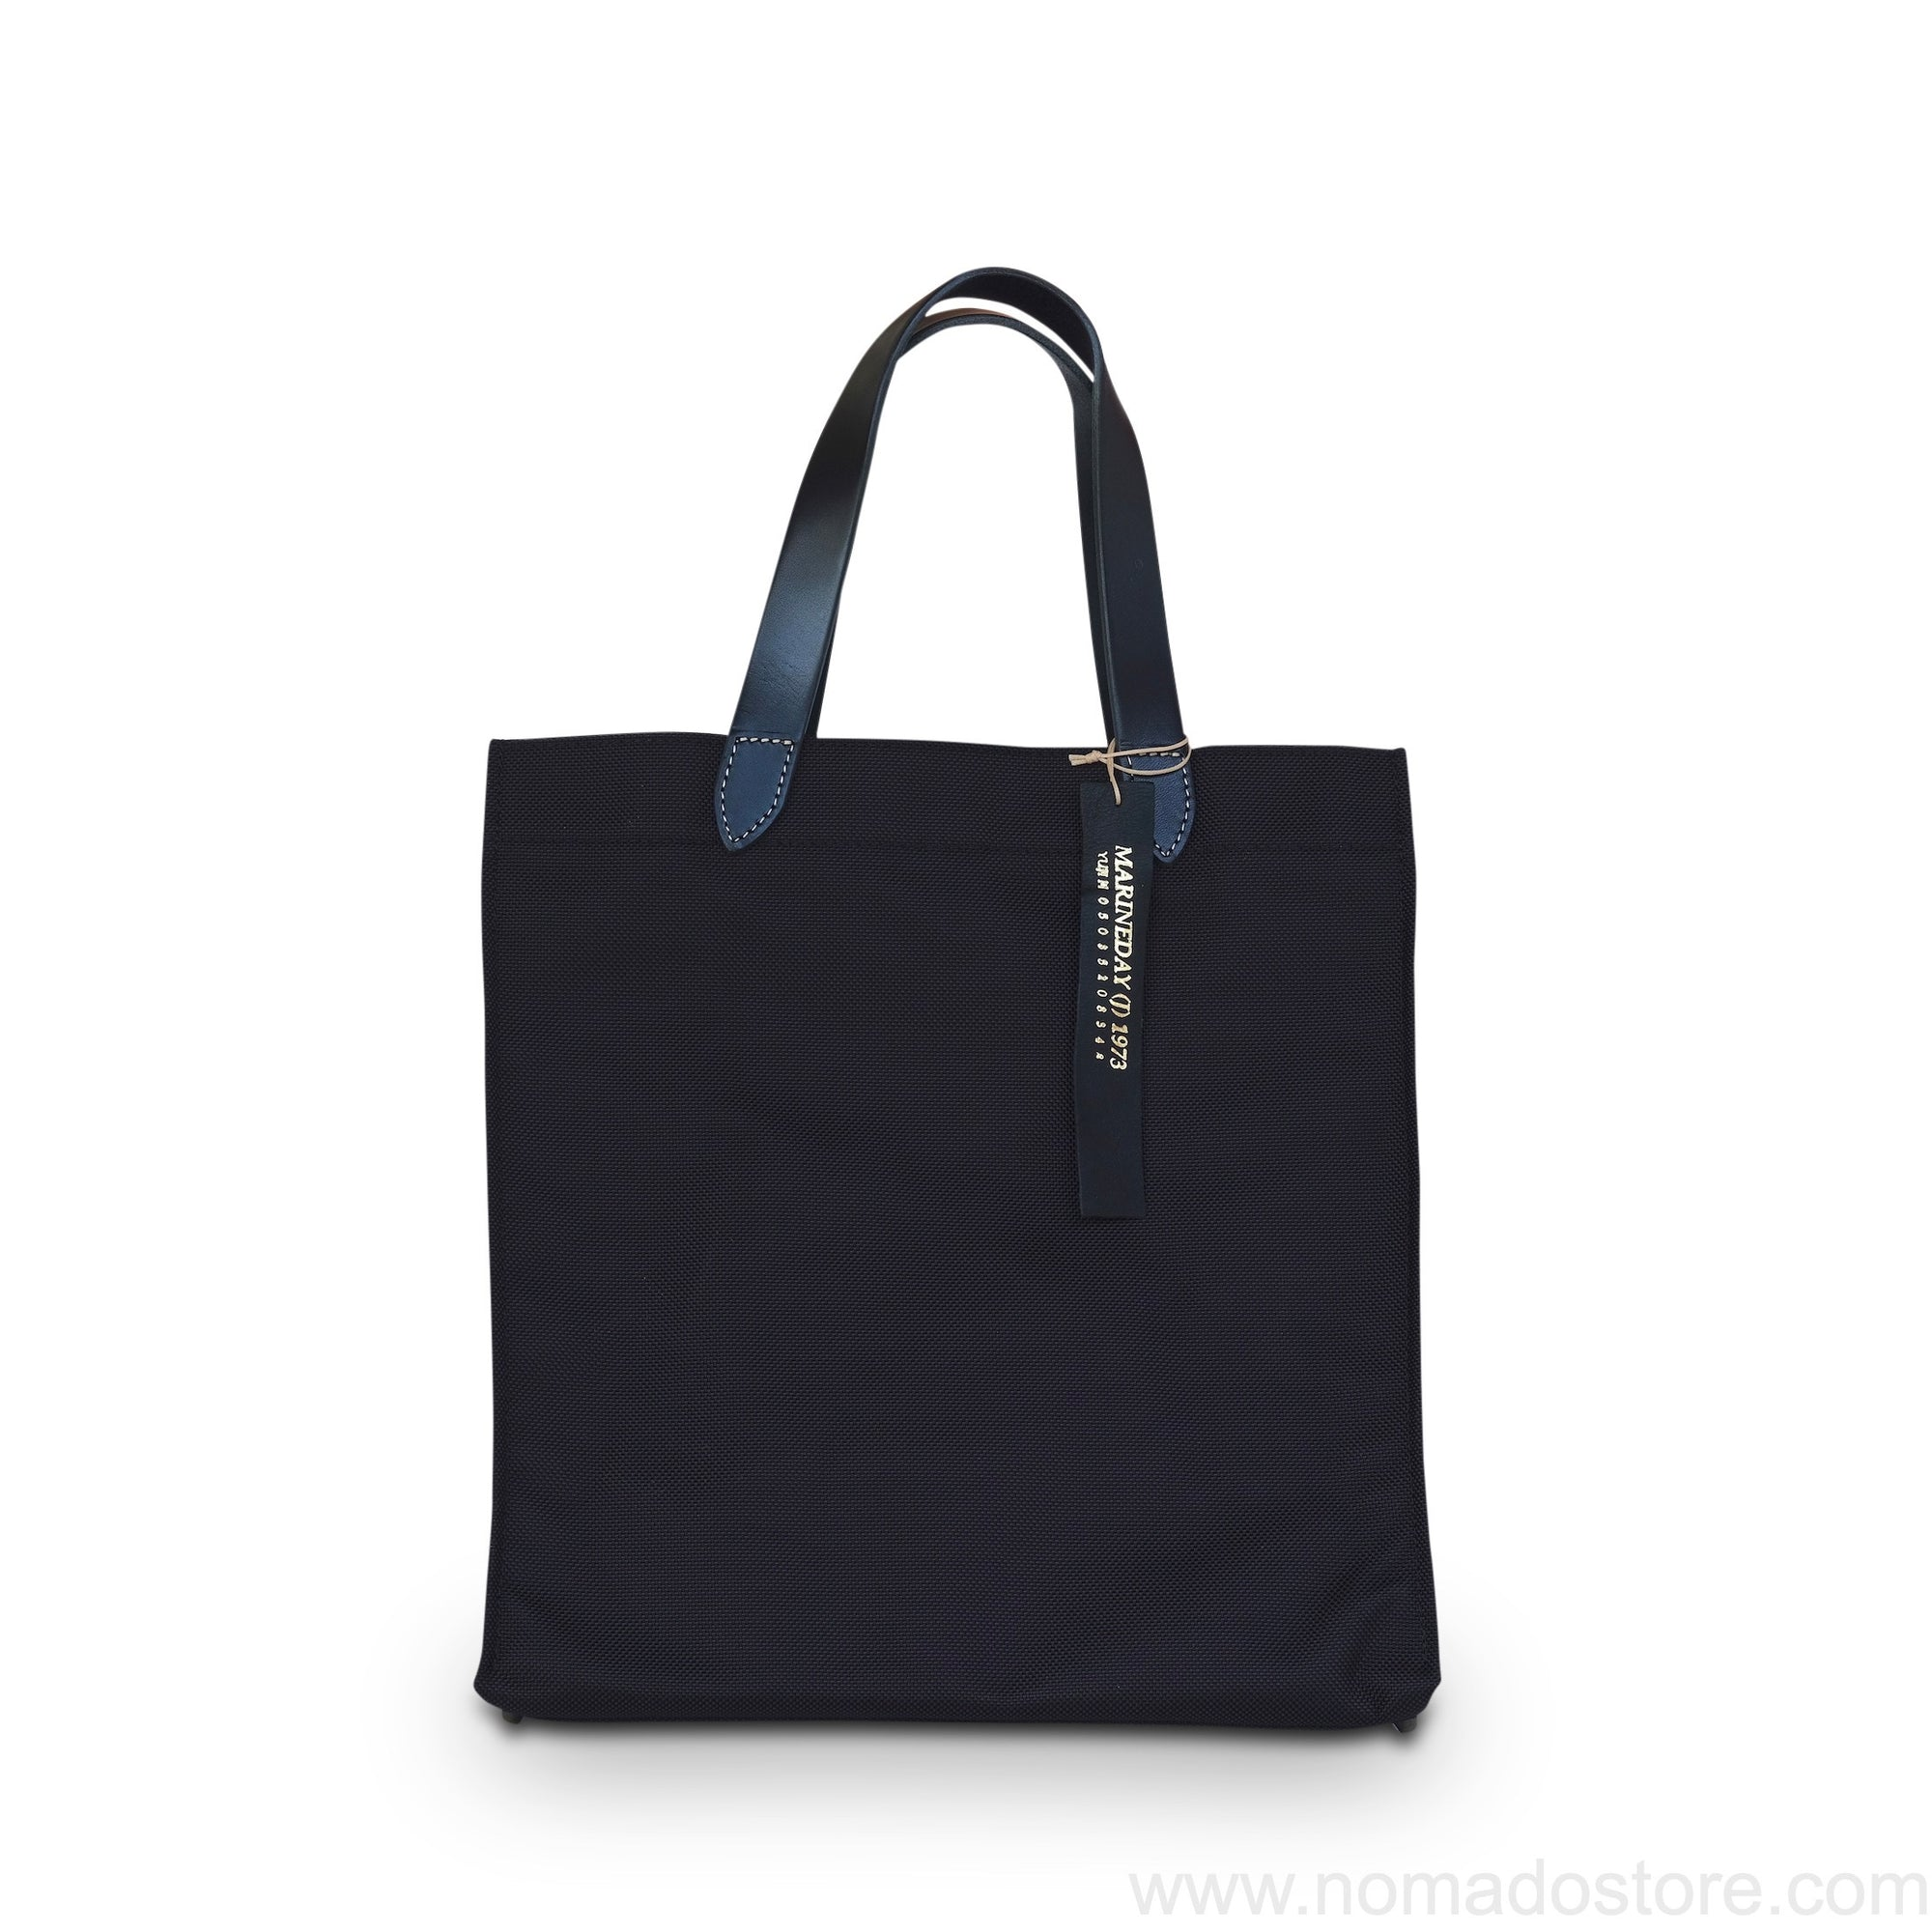 Marineday Flow 66 Nylon Tote Bag (Black/Black) - NOMADO Store